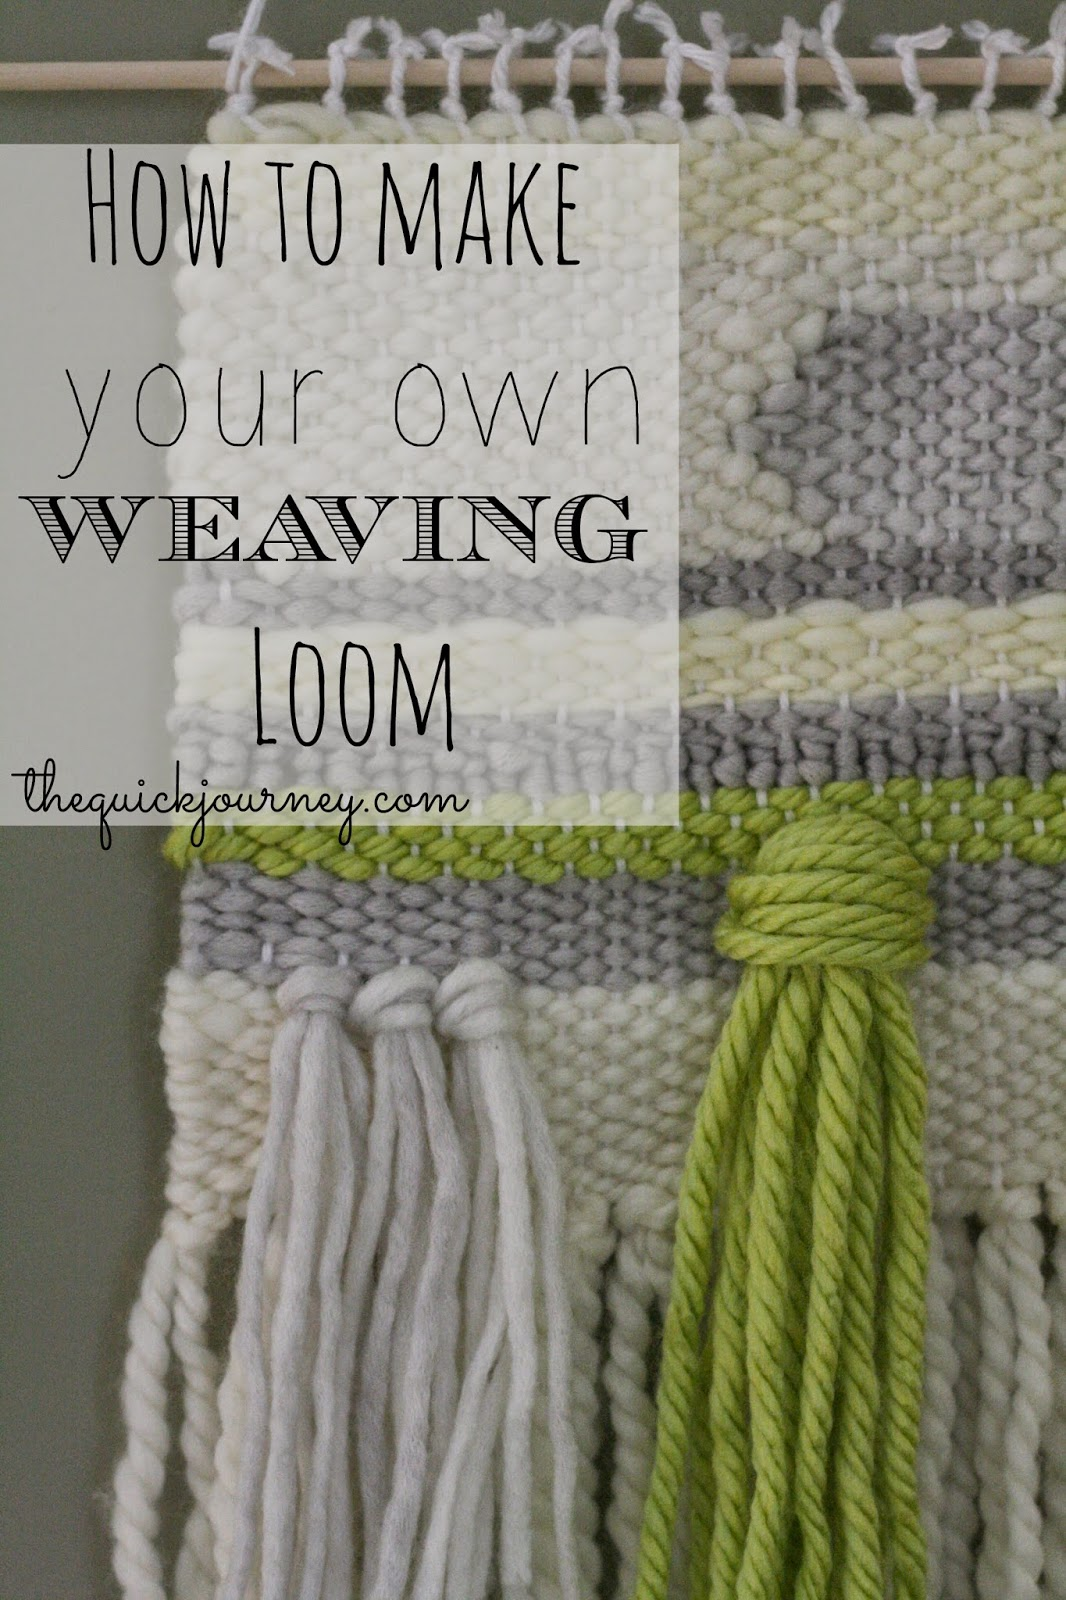 The quick journey diy weaving loom first you mark every 12 inch across your board top and bottom fandeluxe Images